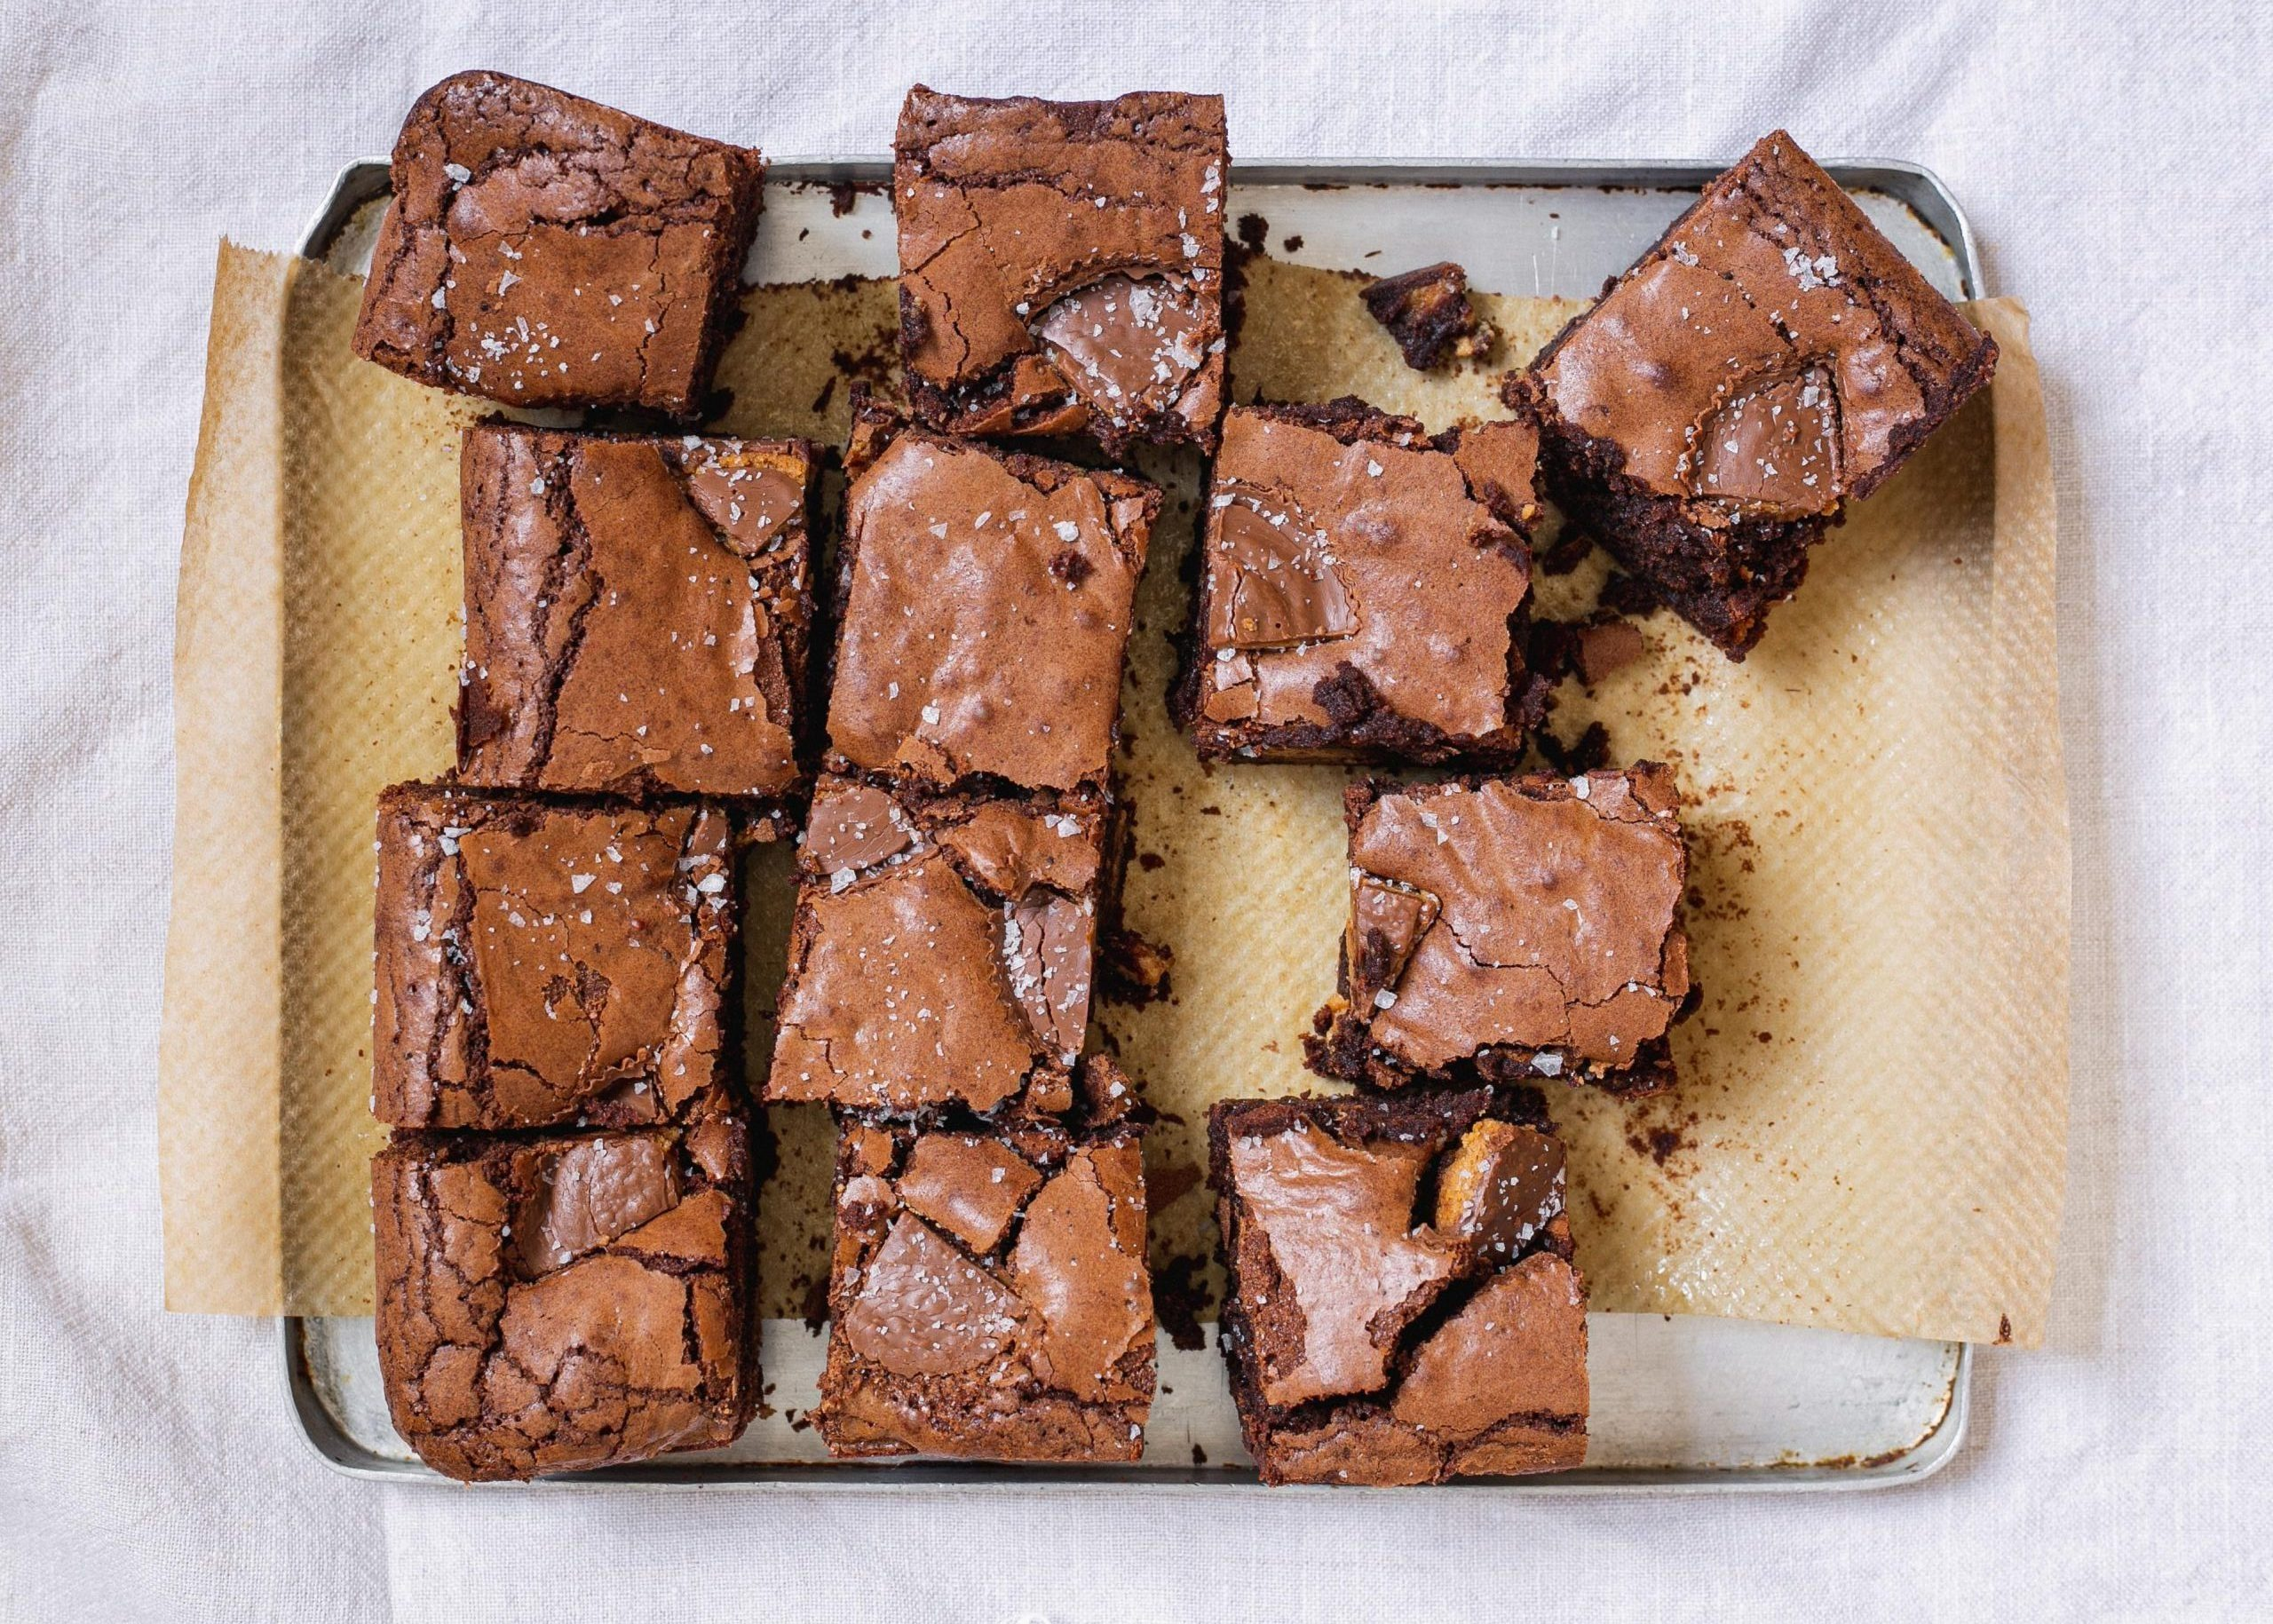 Gluten free and low FODMAP Reese's peanut butter cup brownies